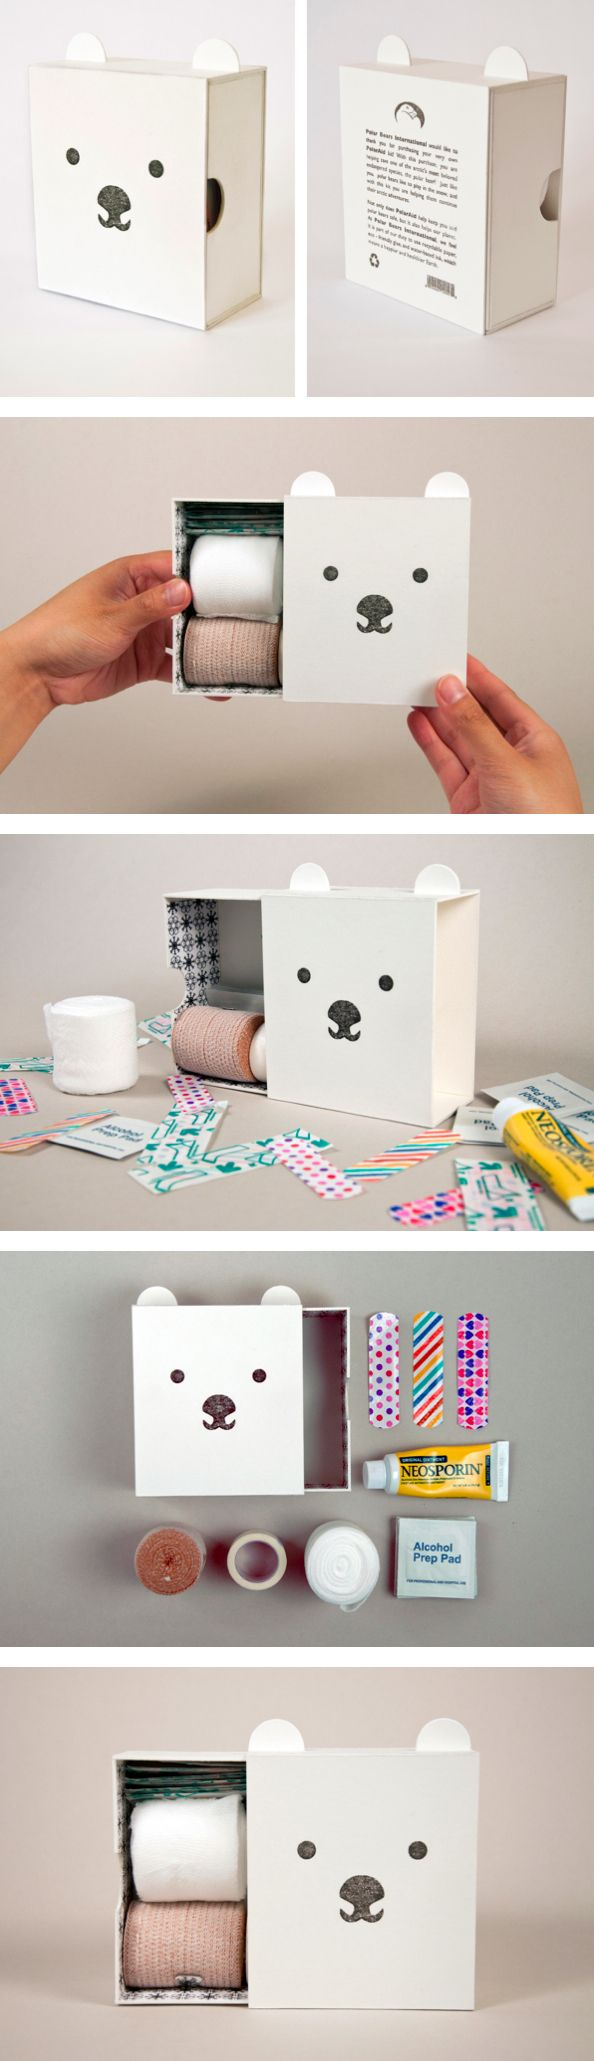 PolarAid Kit - sustainable first aid kit for children by Amy Chen http://www.behance.net/gallery/PolarAid-Kit/8500939